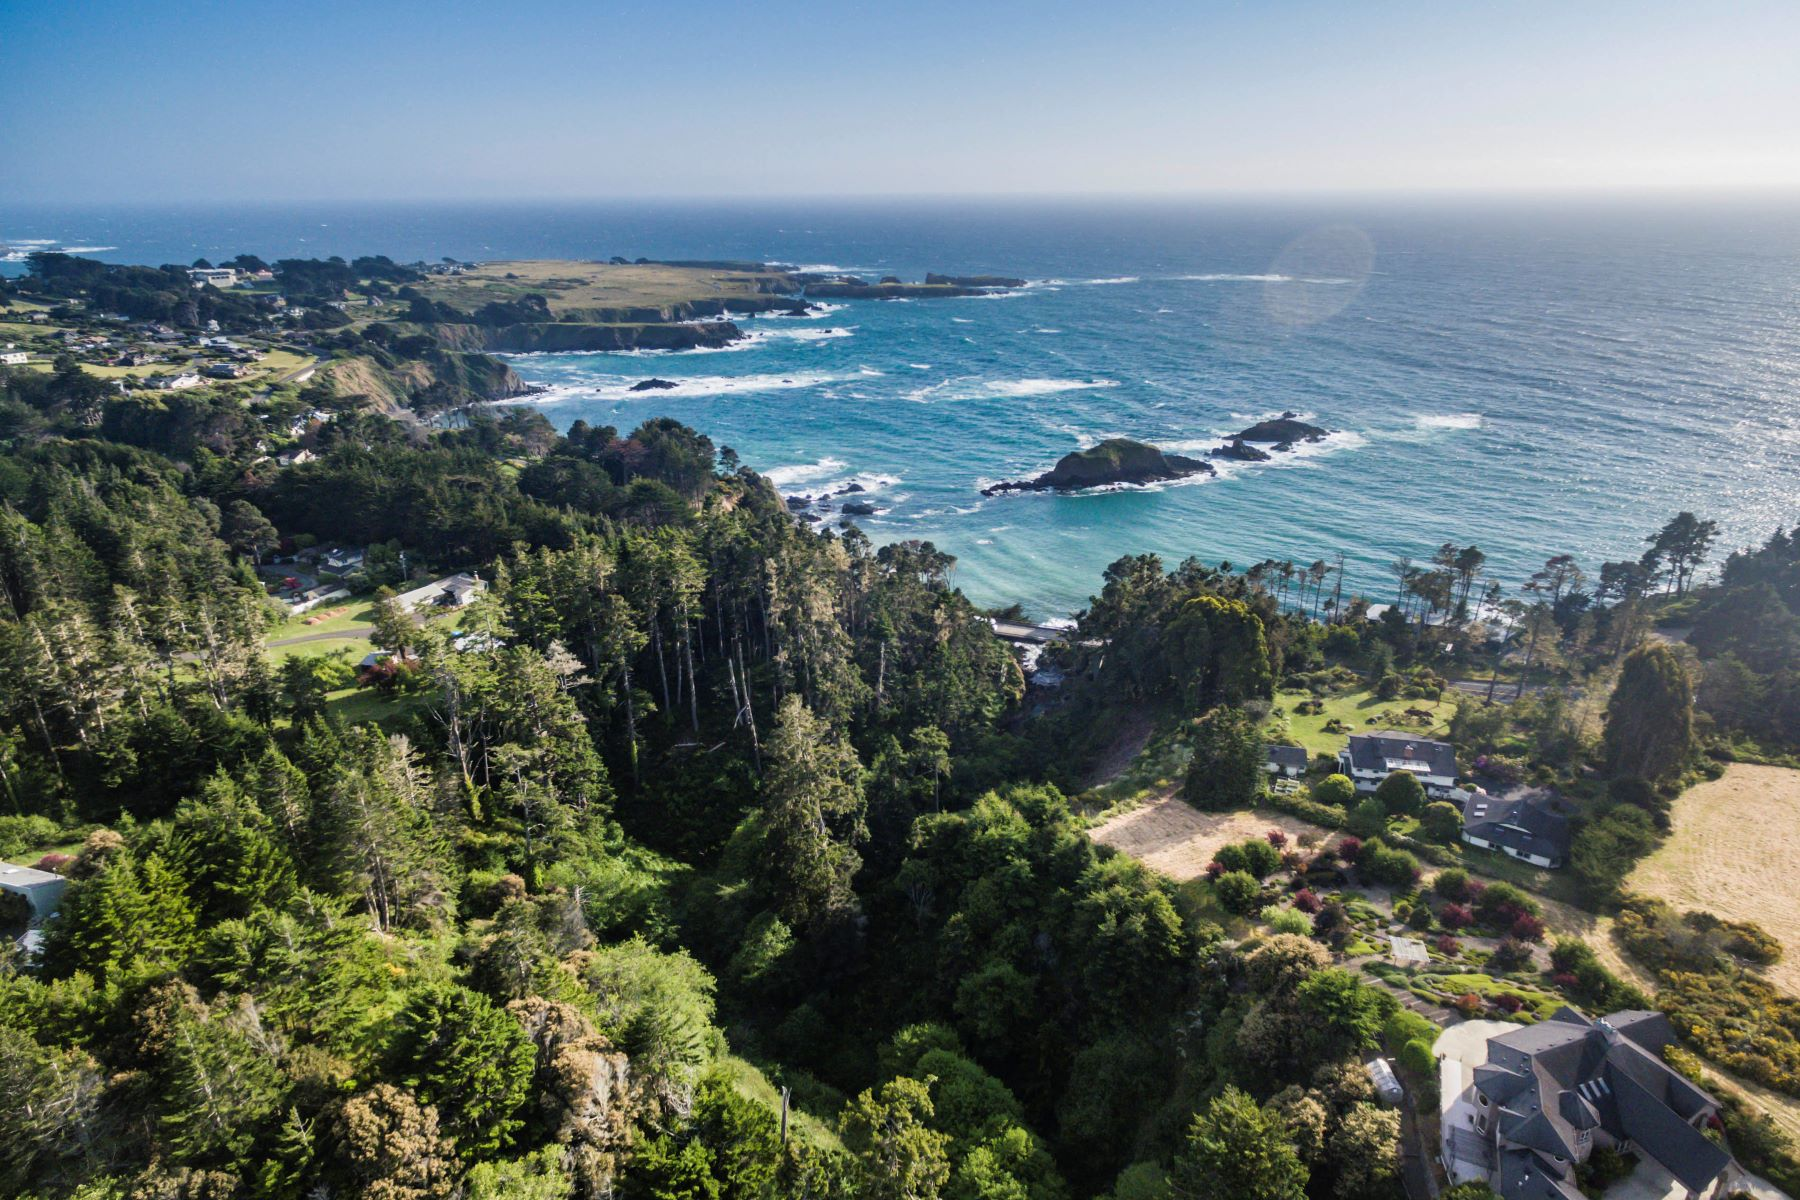 Land for Sale at Surfwood IV Oceanview Parcel 44761 Baywood Drive Mendocino, California 95460 United States